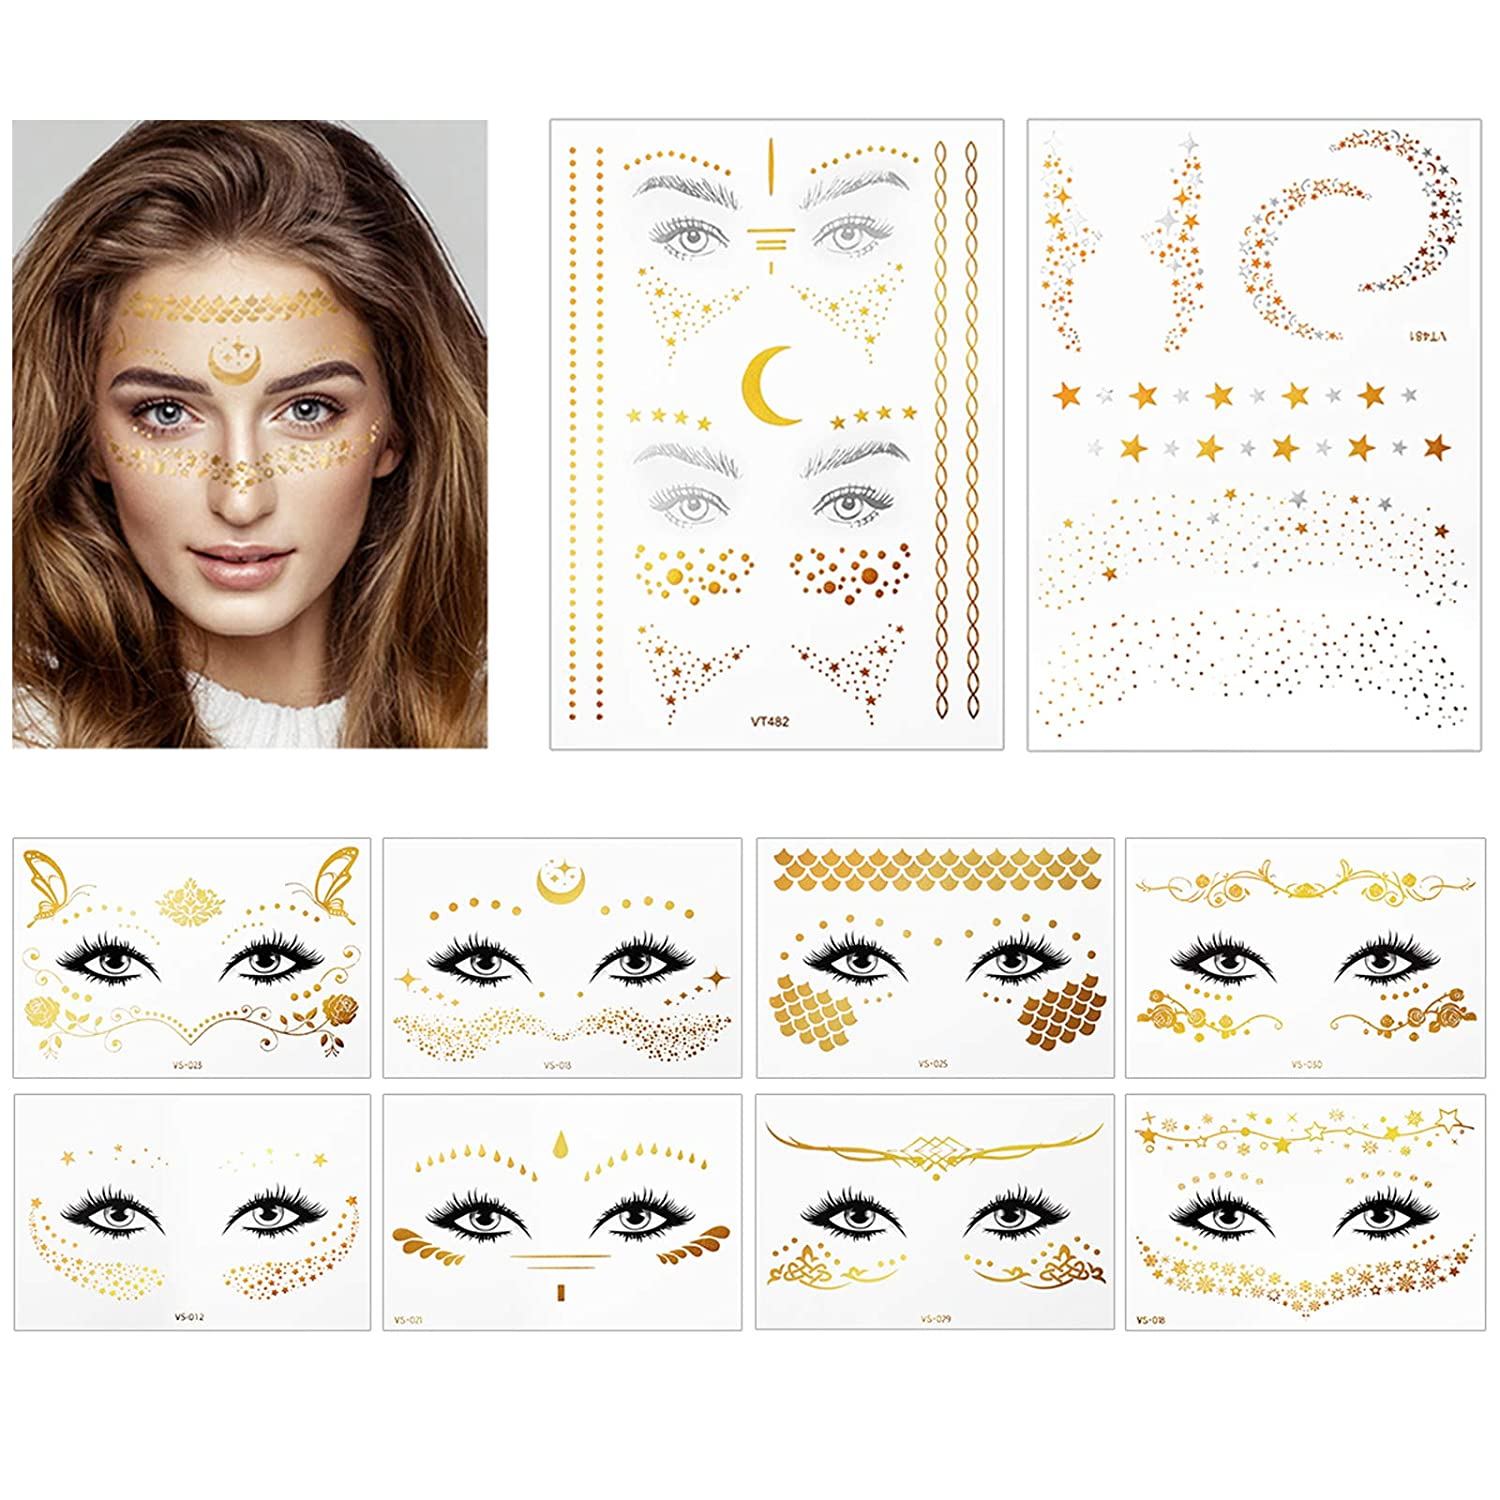 Face Gold Fake Tattoos, 10 Sheets Waterproof Metallic Temporary Tattoos for Women Girls Makeup